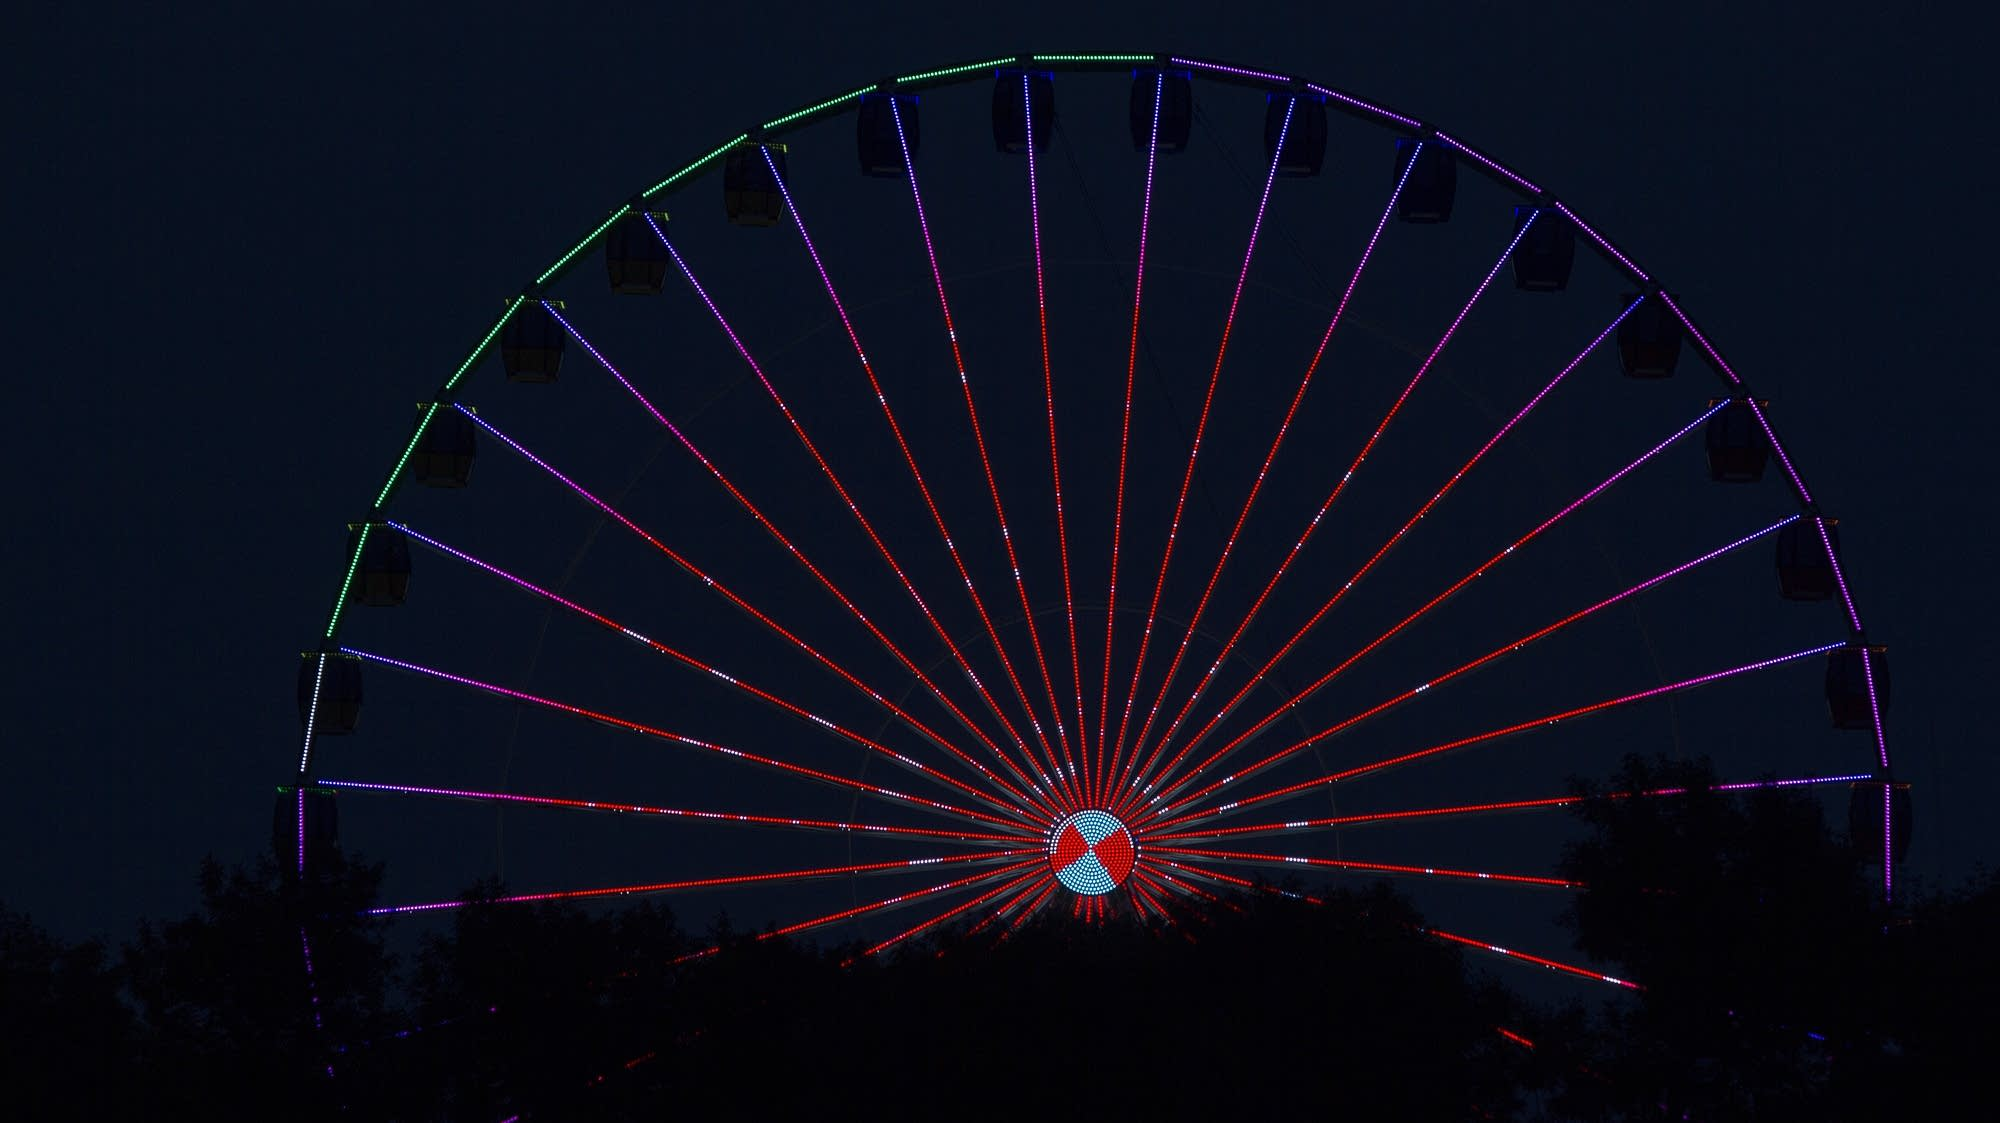 The State Fair's new Ferris Wheel